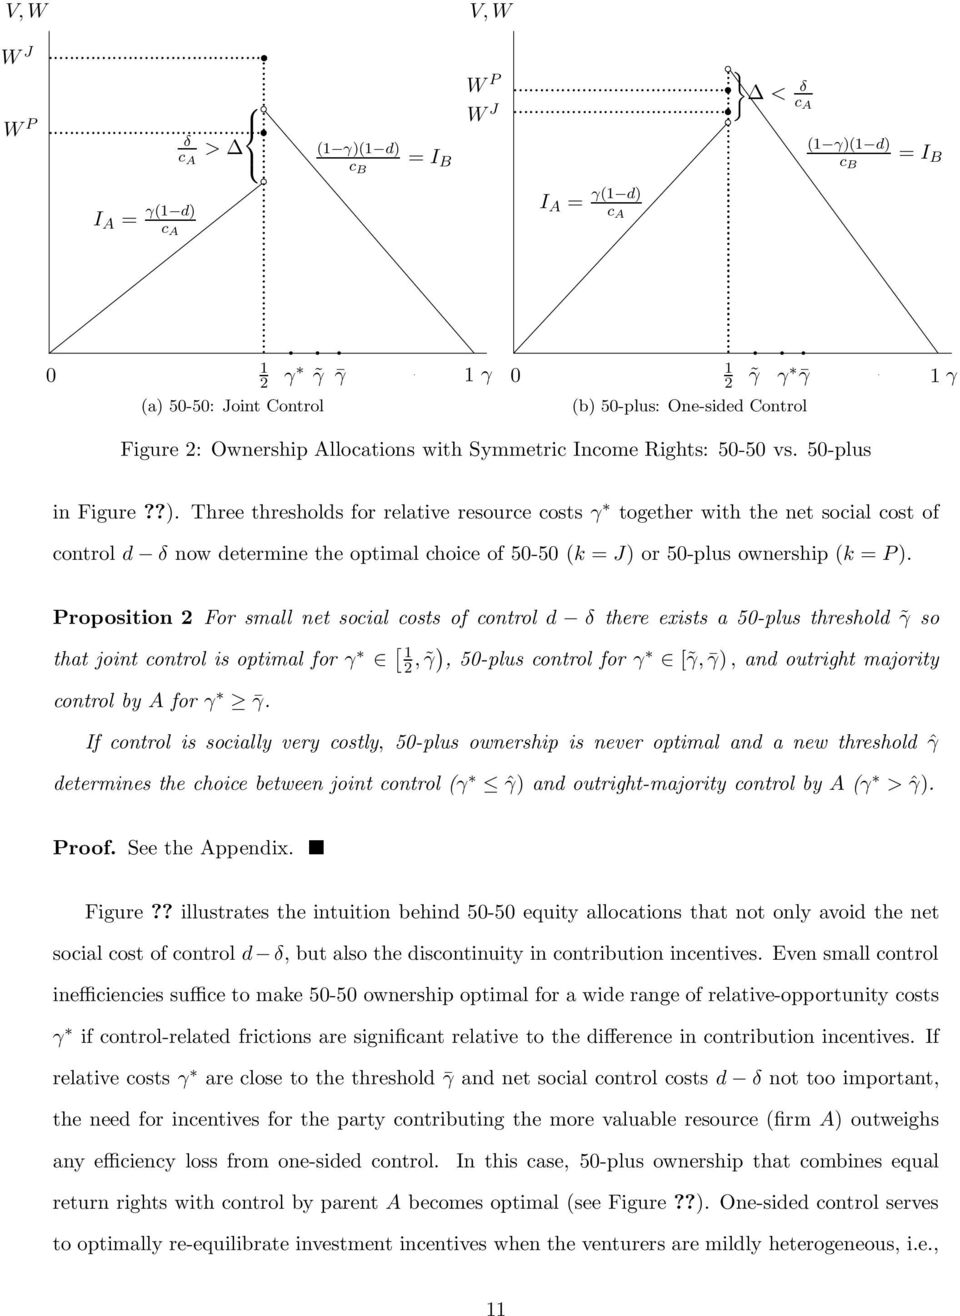 Proposition 2 For small net social costs of control d δ there exists a 50-plus threshold γ so that joint control is optimal for γ [ 1 2, γ), 50-plus control for γ [ γ, γ), and outright majority